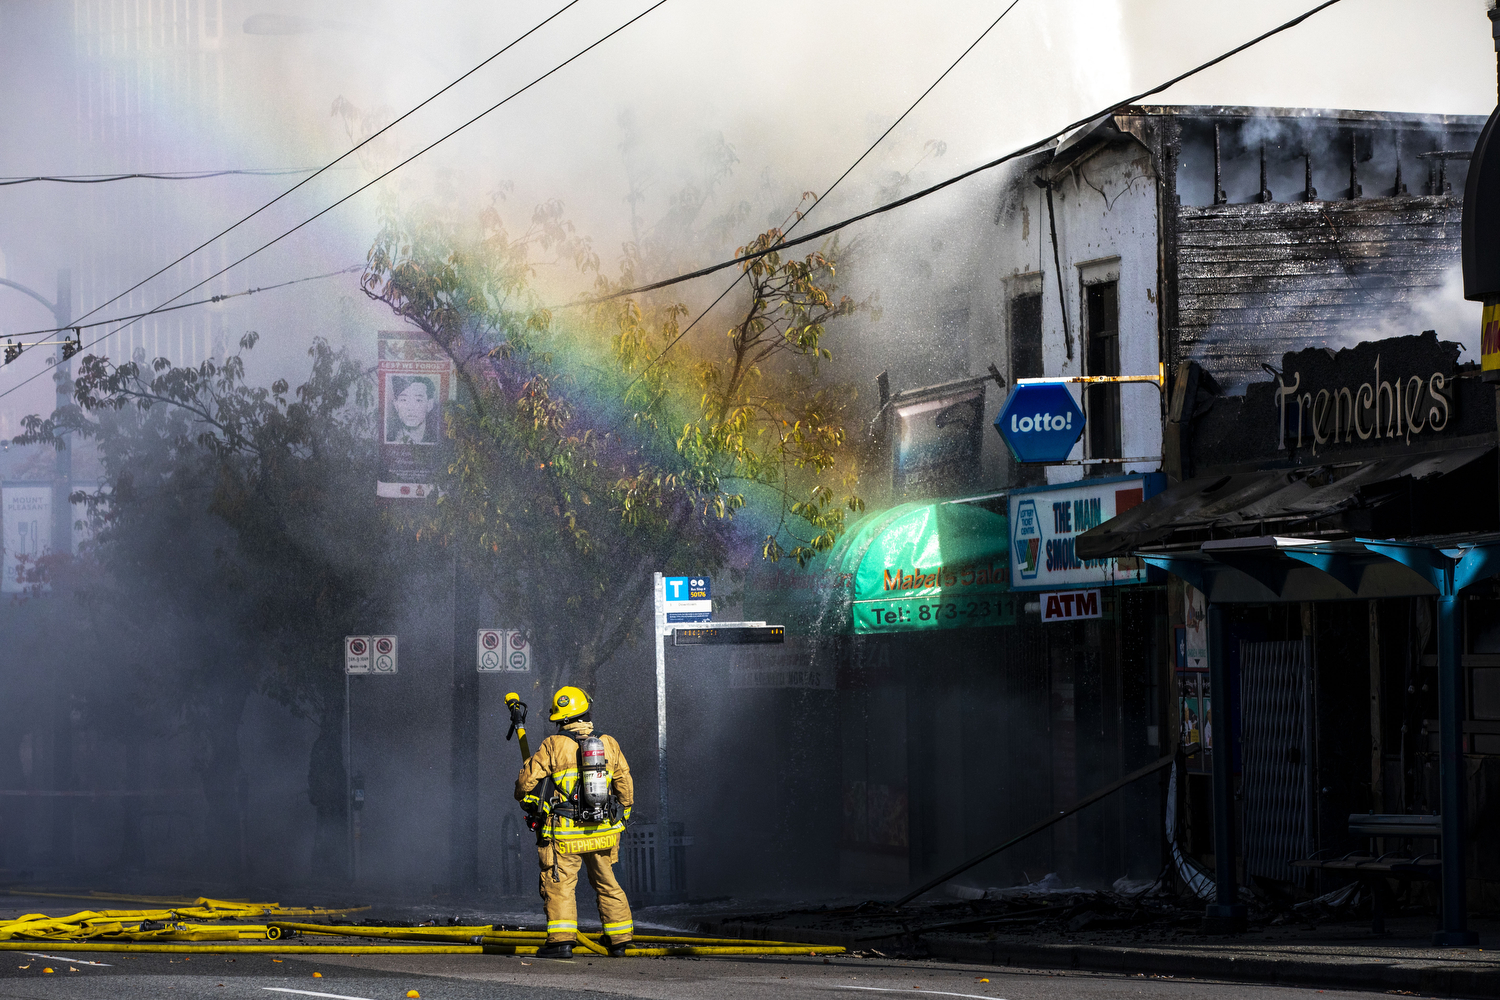 Vancouver fire crews work to contain a fire in the 2400 block of Main Street in Vancouver on Oct. 22, 2020. (Ben Nelms/CBC Vancouver)